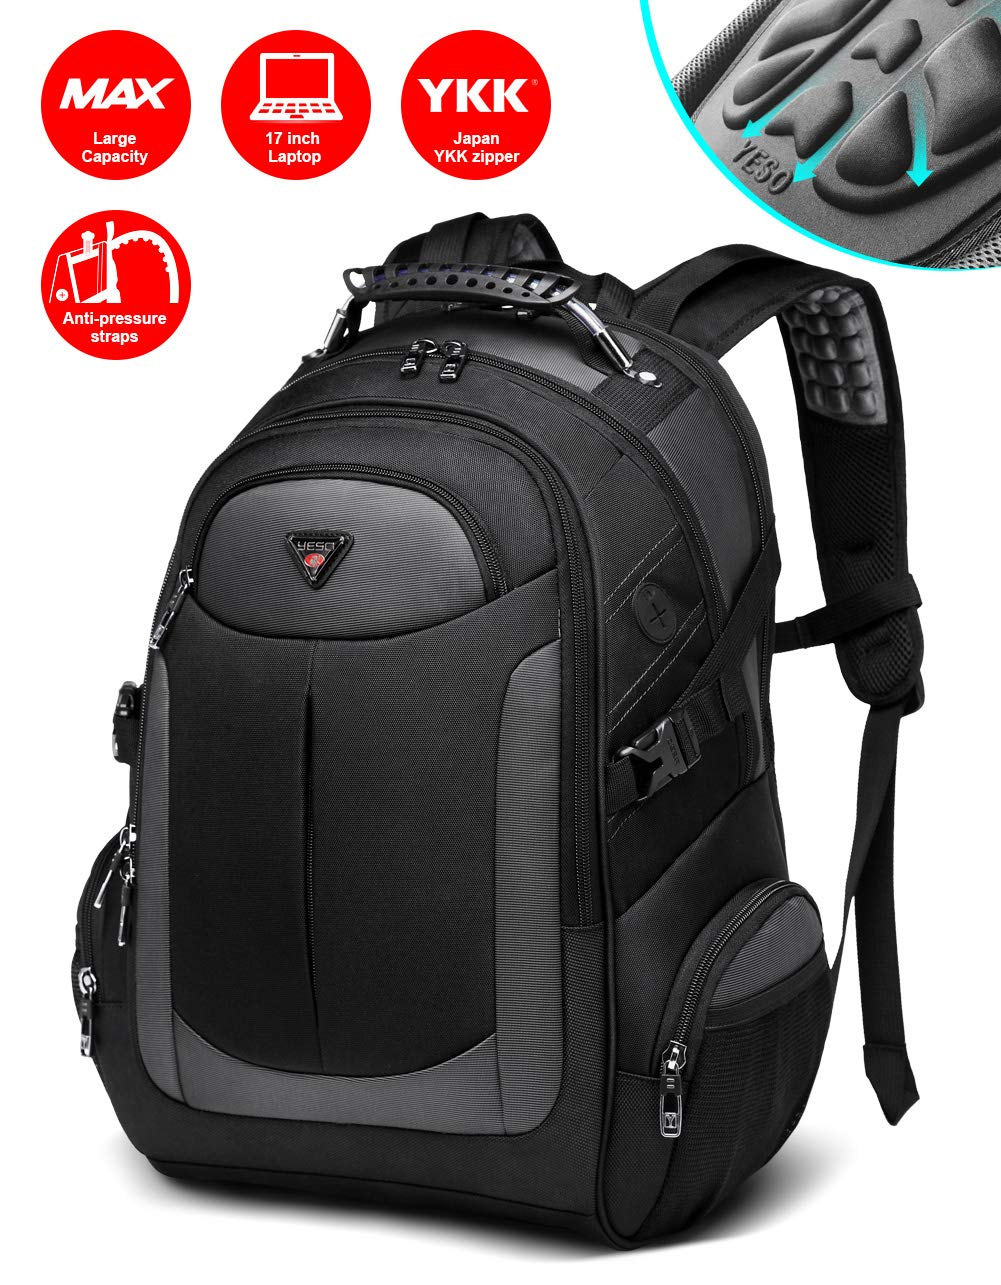 0df006eb6df6 Backpack for Men, Business Slim Durable Laptop Backpacks with YKK Zipper,  Water Resistant College School Computer Bag for Men & Women Fits 17 inch ...